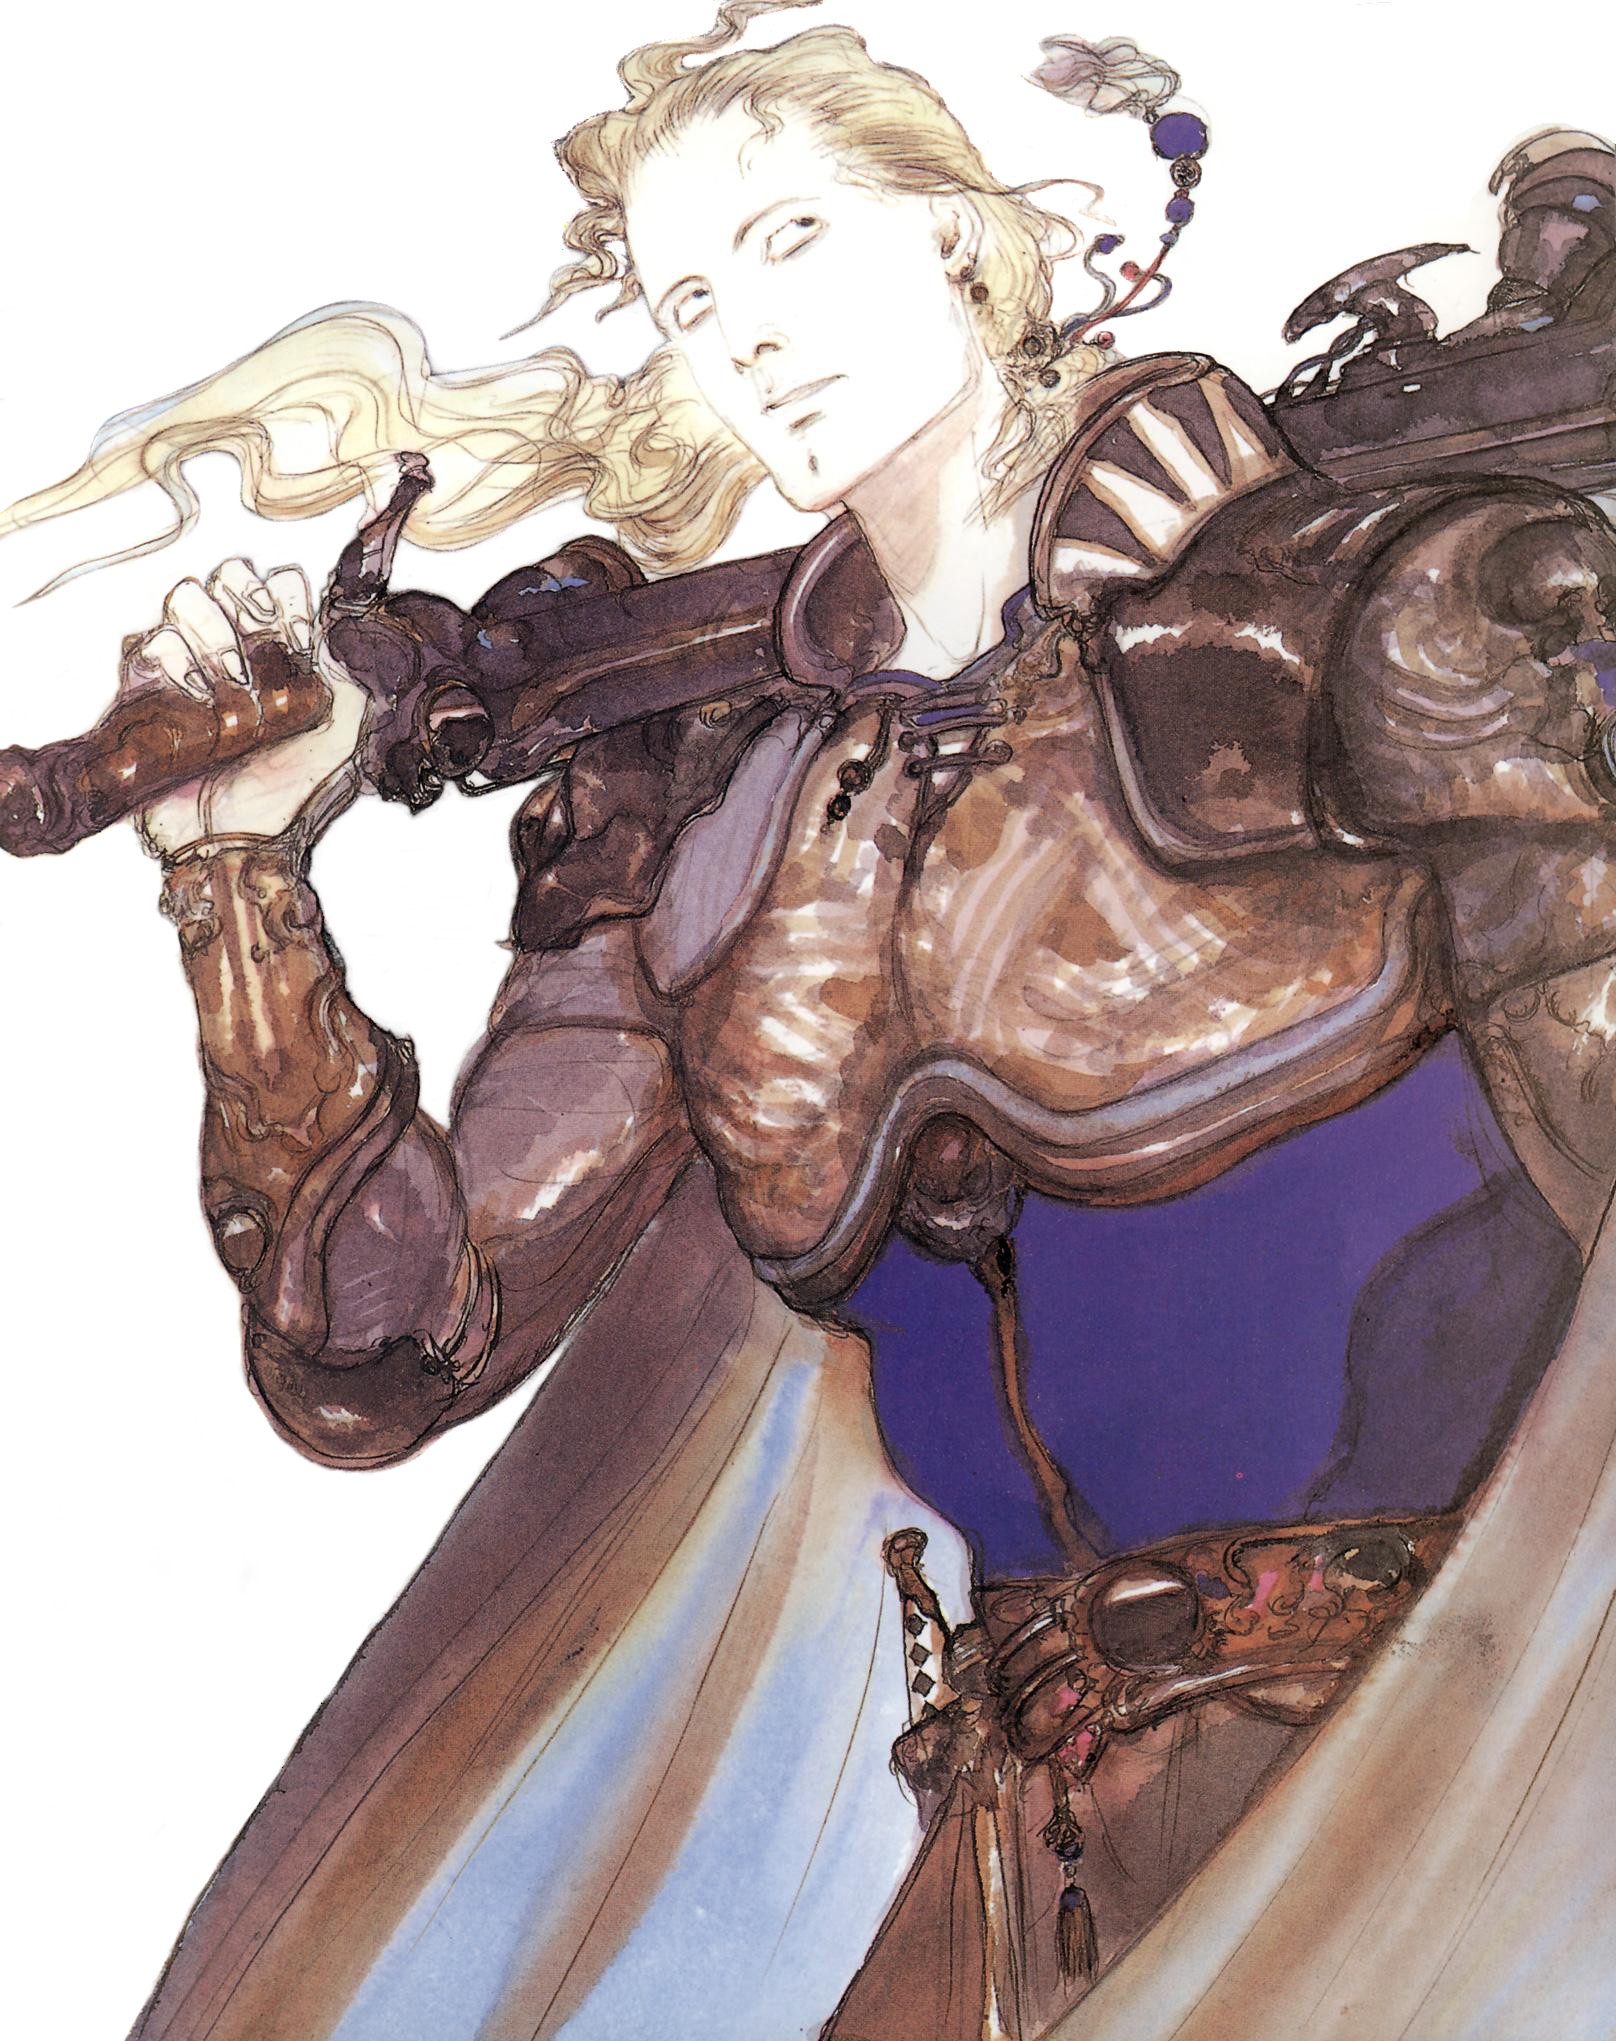 1616x2041 Final Fantasy VI images Edgar Roni Figaro HD wallpaper and background photos